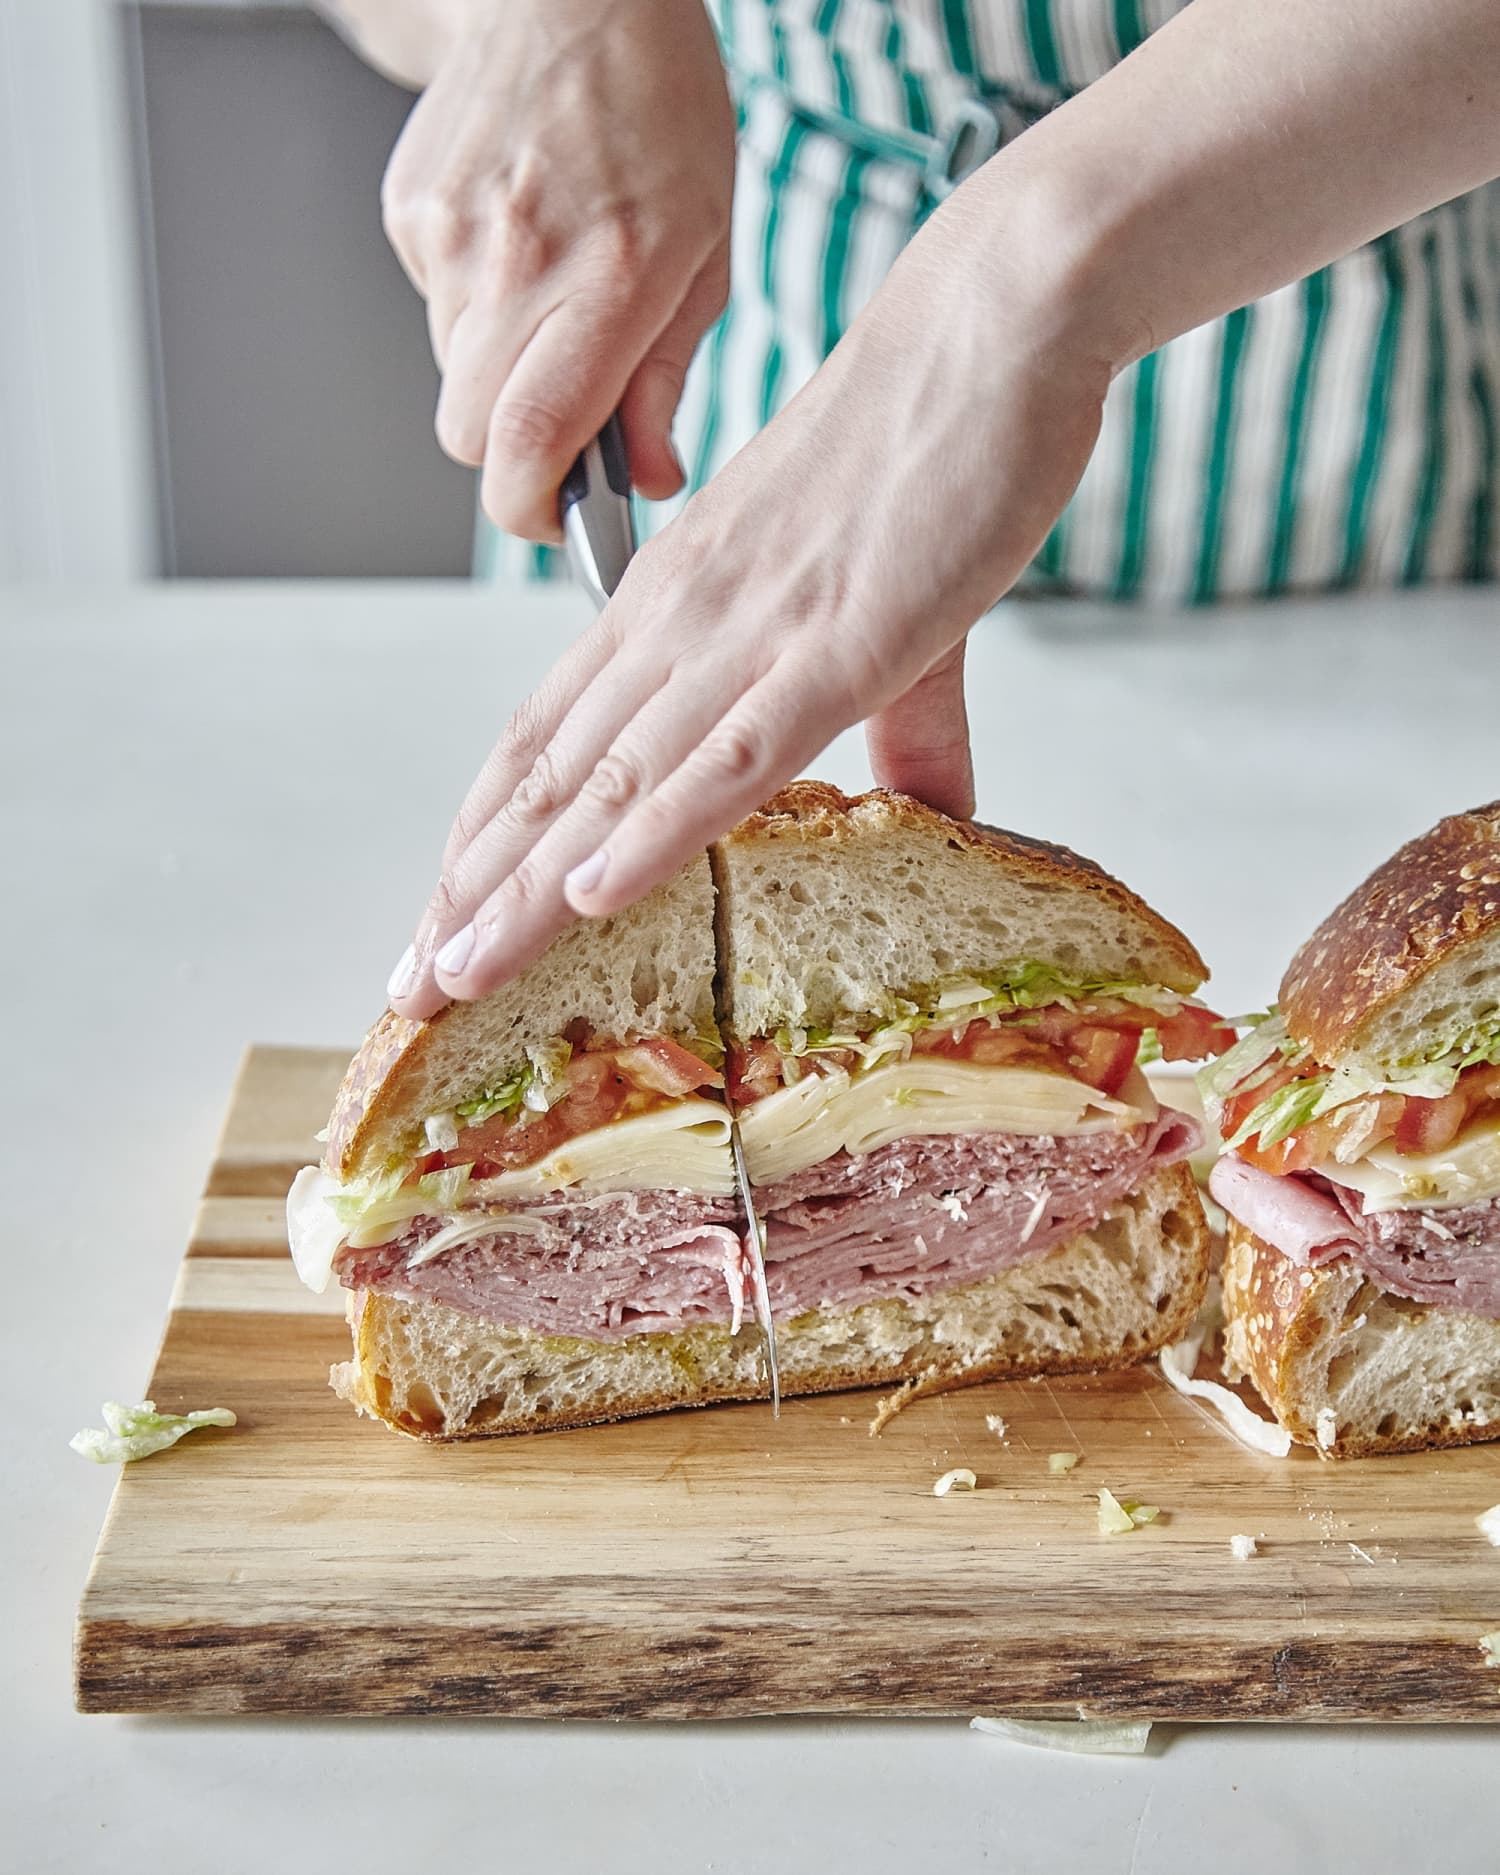 The Best Sandwich-Making Tips, According to the Internet